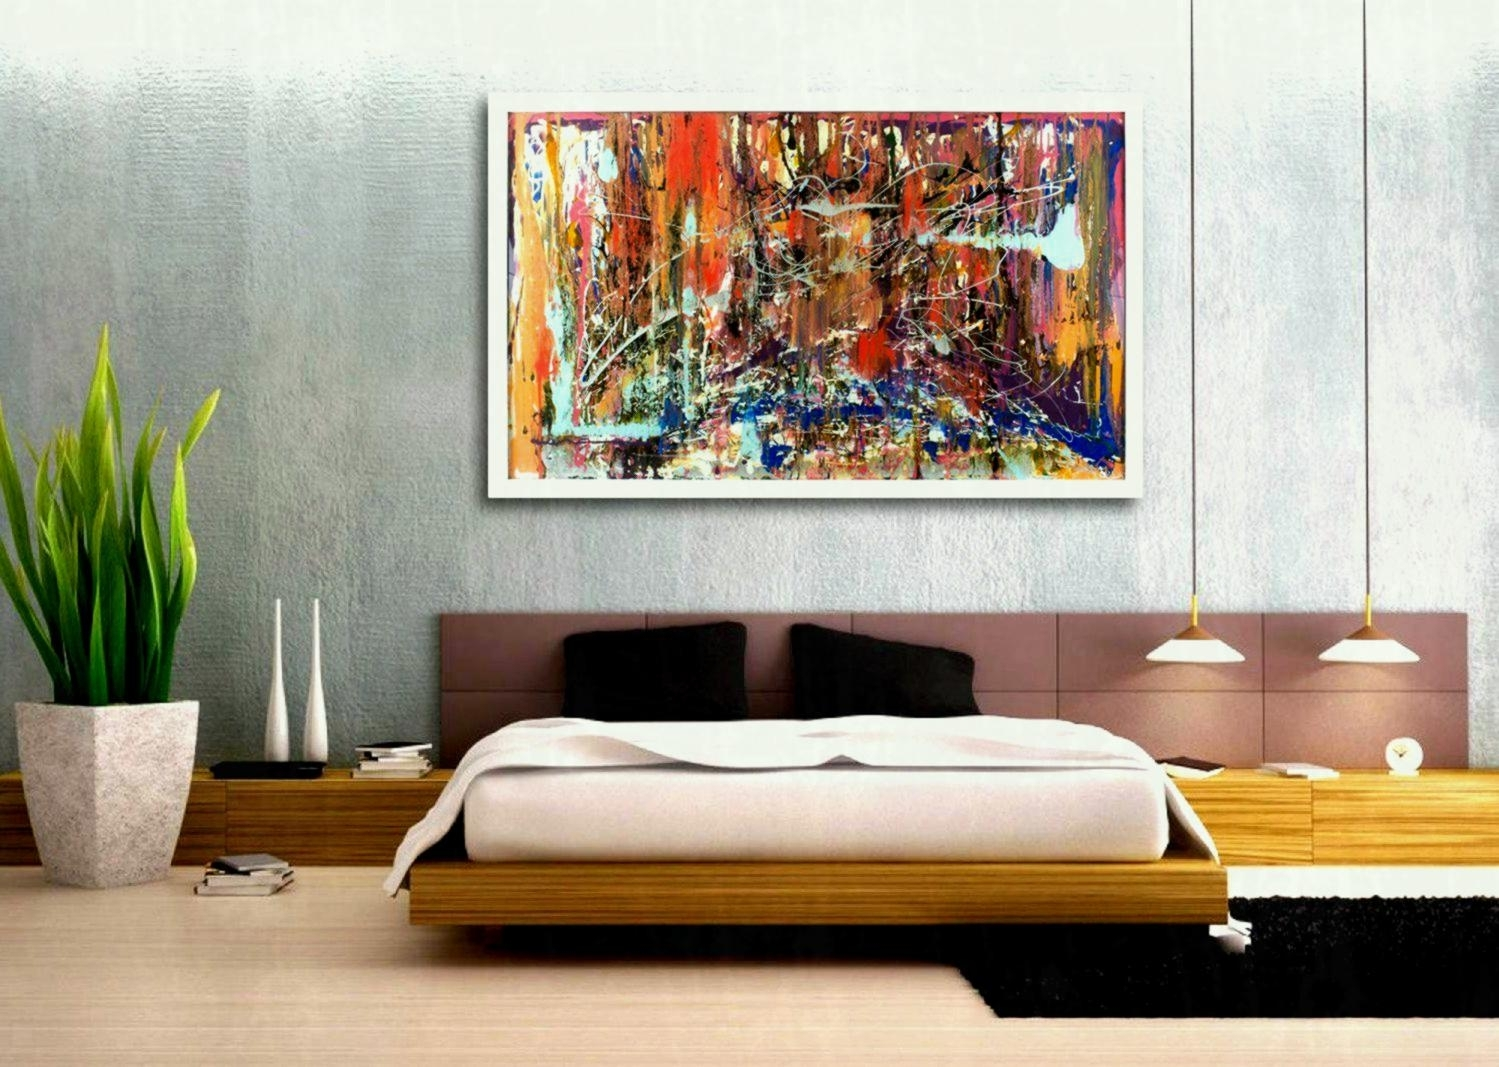 Large Canvas Wall Art Calm Soothing Huge Cheap Piece Living Room For 2018 Cheap Large Canvas Wall Art (View 19 of 20)